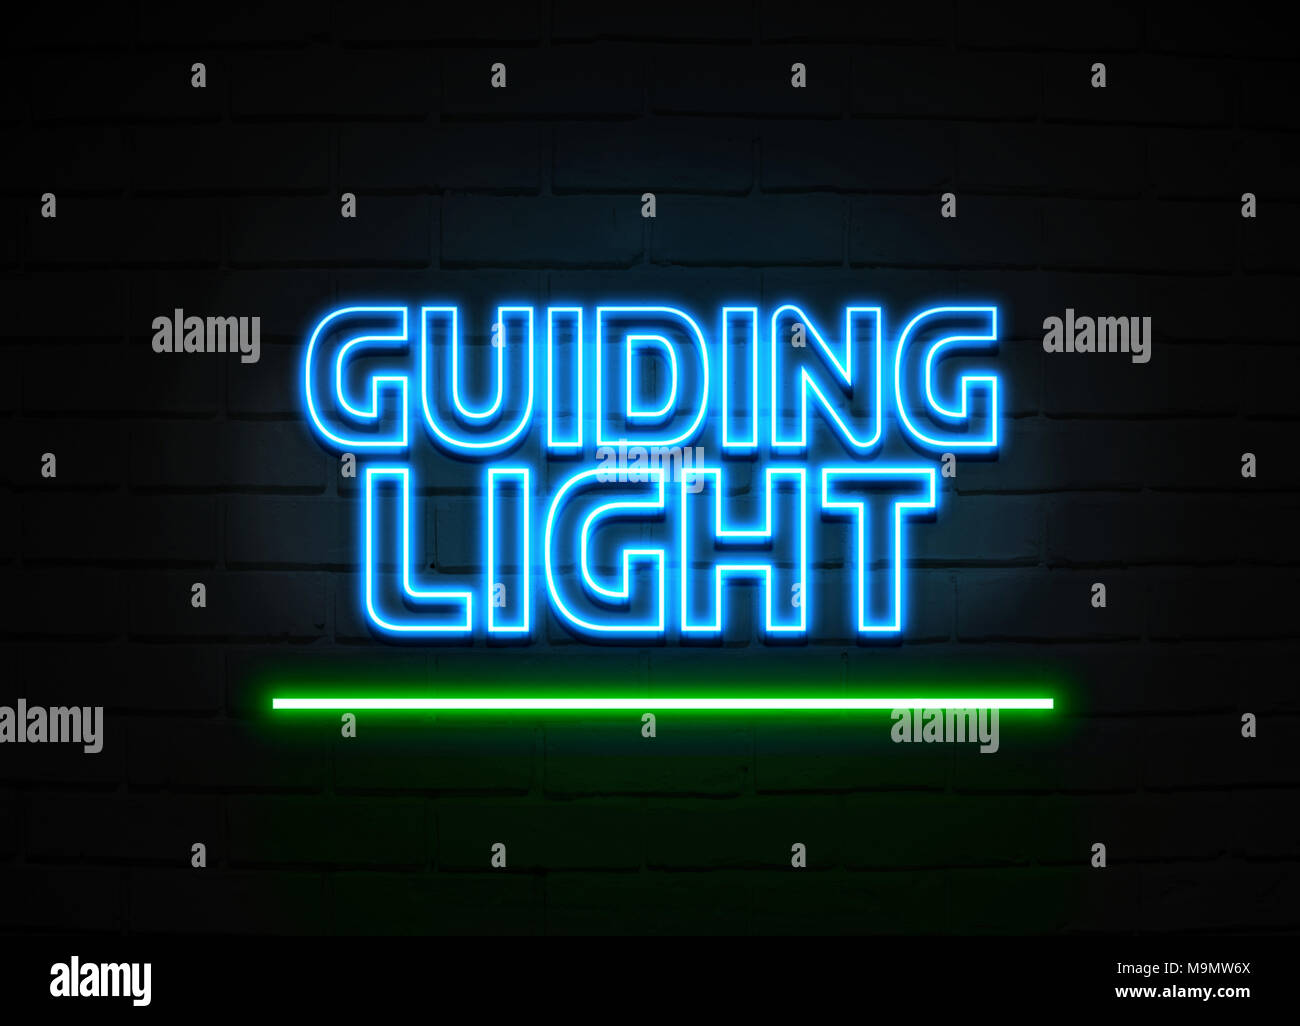 Guiding Light neon sign - Glowing Neon Sign on brickwall wall - 3D rendered royalty free stock illustration. - Stock Image